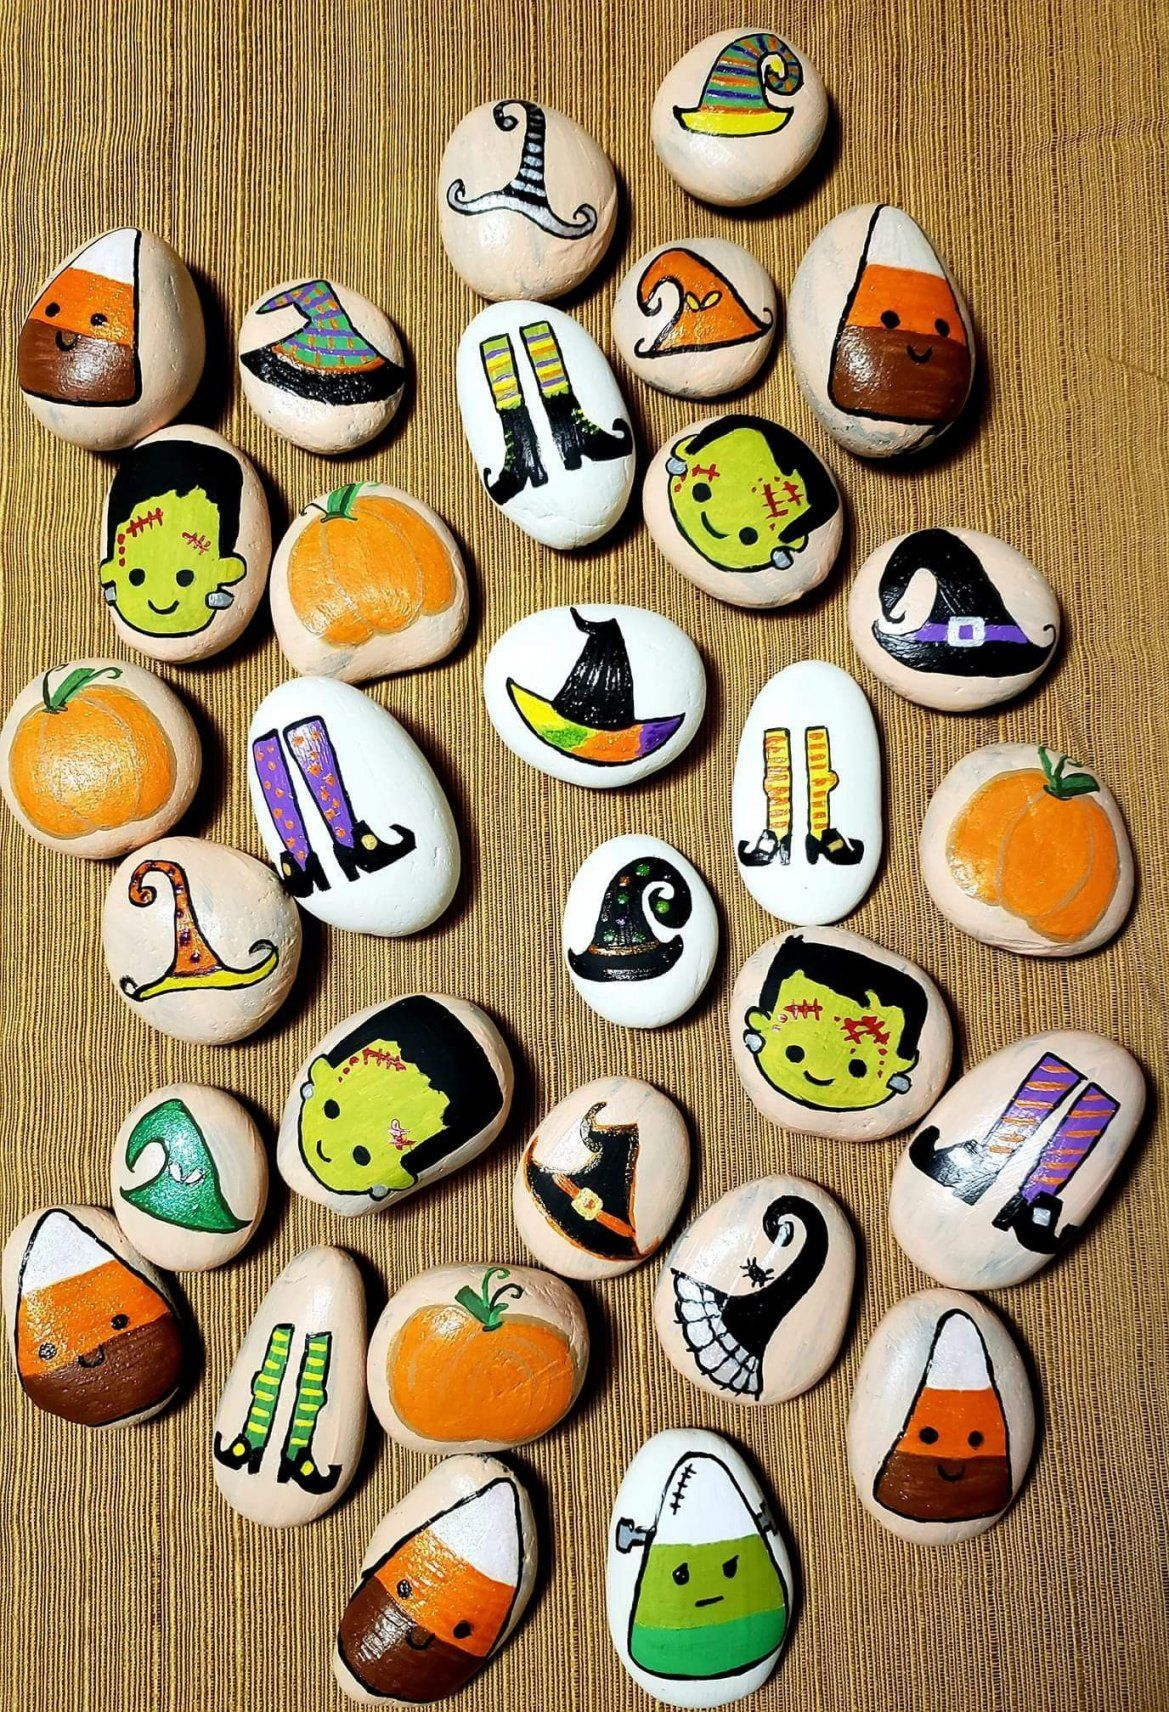 The Latest Trend In Halloween Stone Painting Halloween Stone Painting Manualidades Arte Manualidades Para Vender